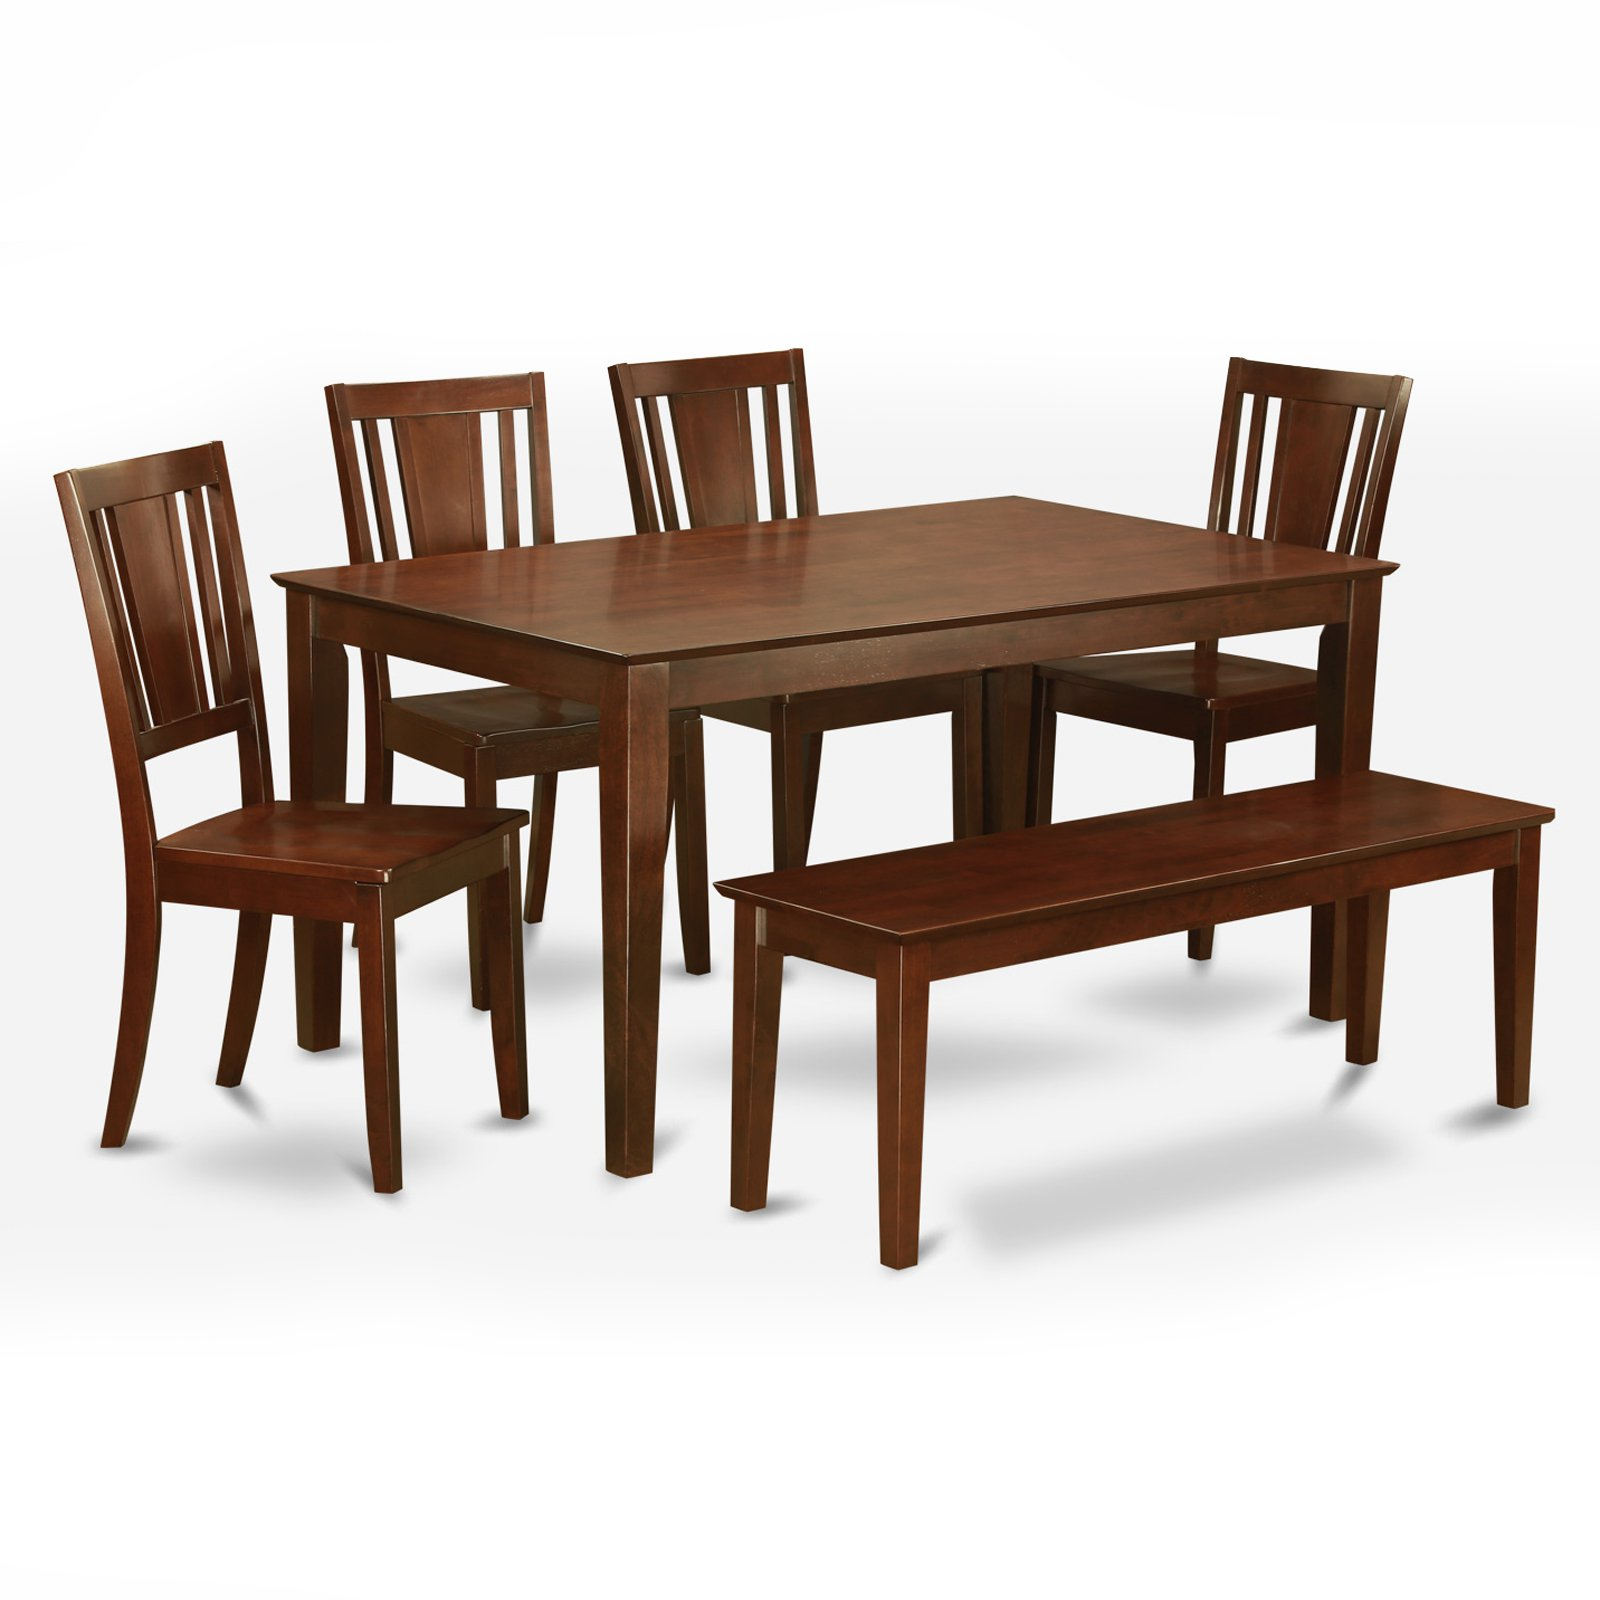 East West Furniture Capris 6 Piece Rectangular Dining Table Set with Buckland Wooden Chairs And Bench